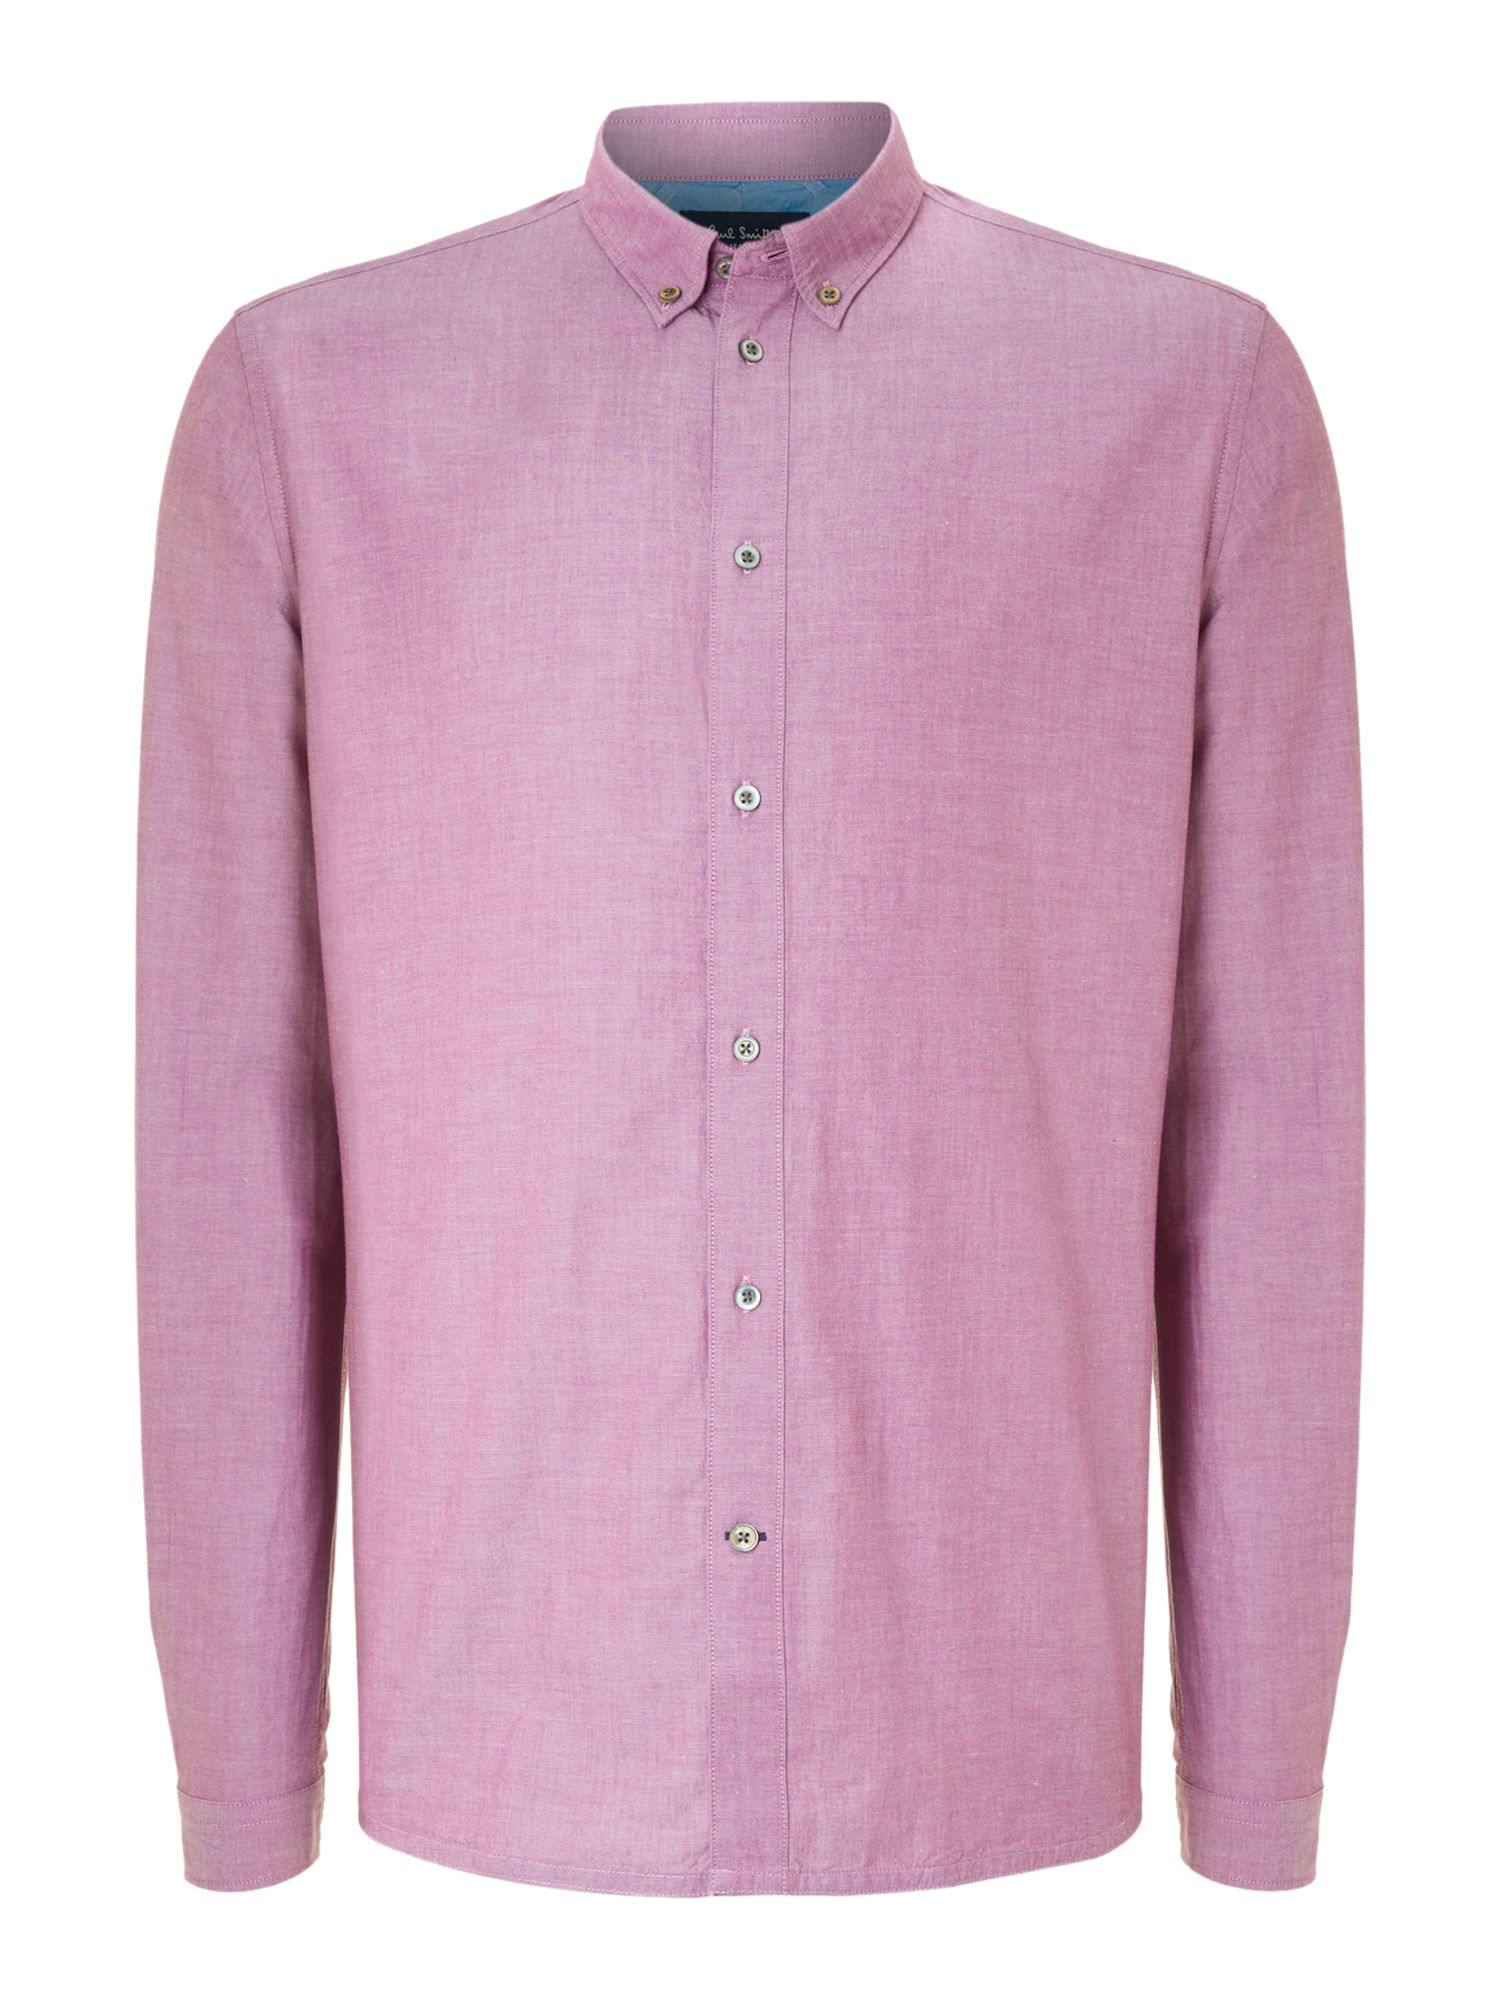 Paul smith long sleeve oxford shirt in pink for men lyst for Pink oxford shirt men